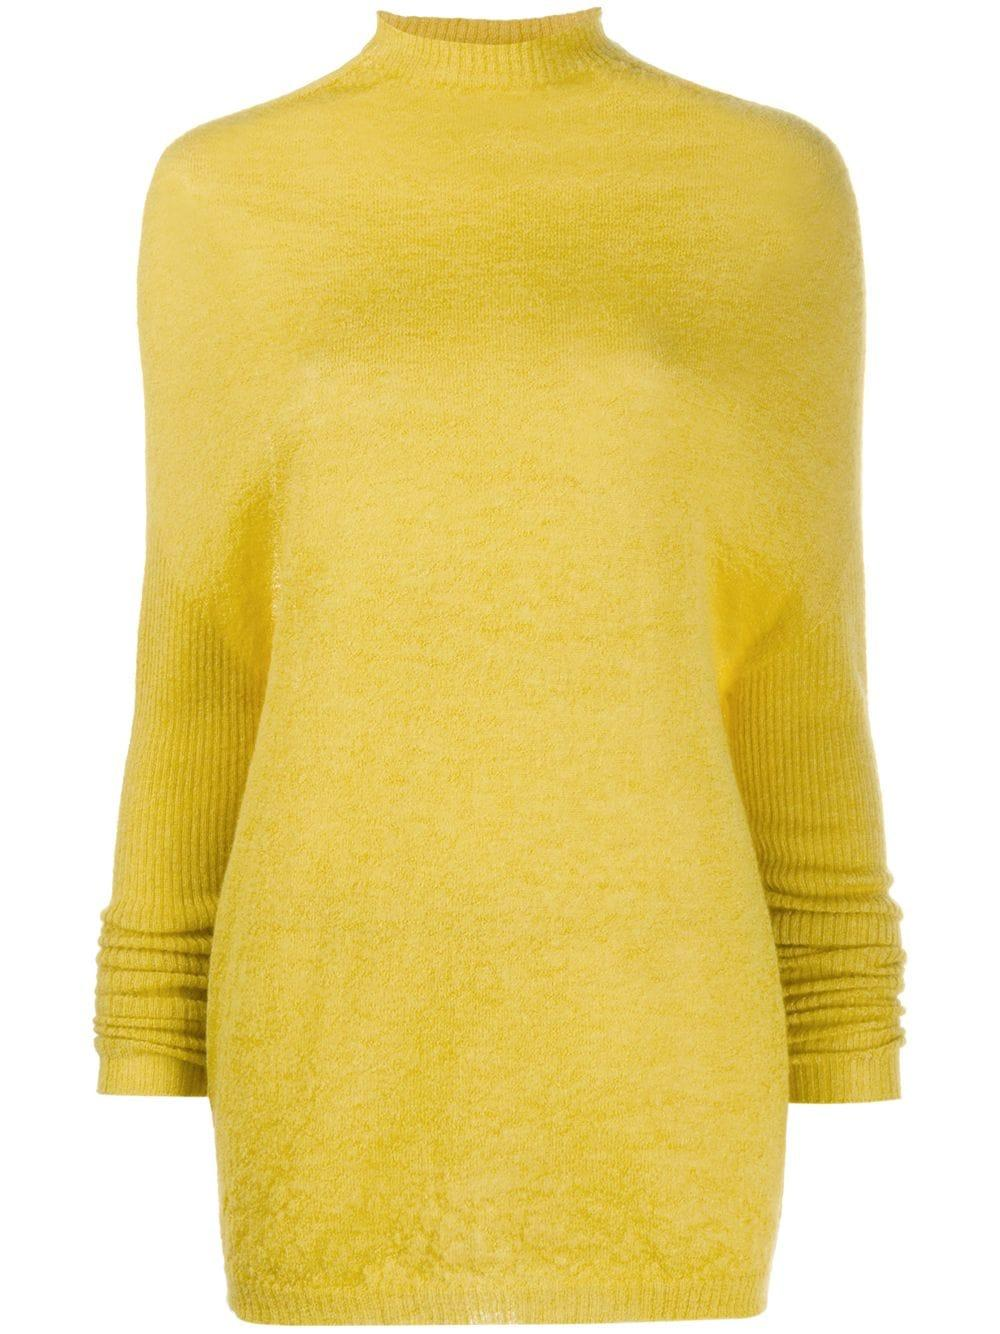 Crater Knit Top